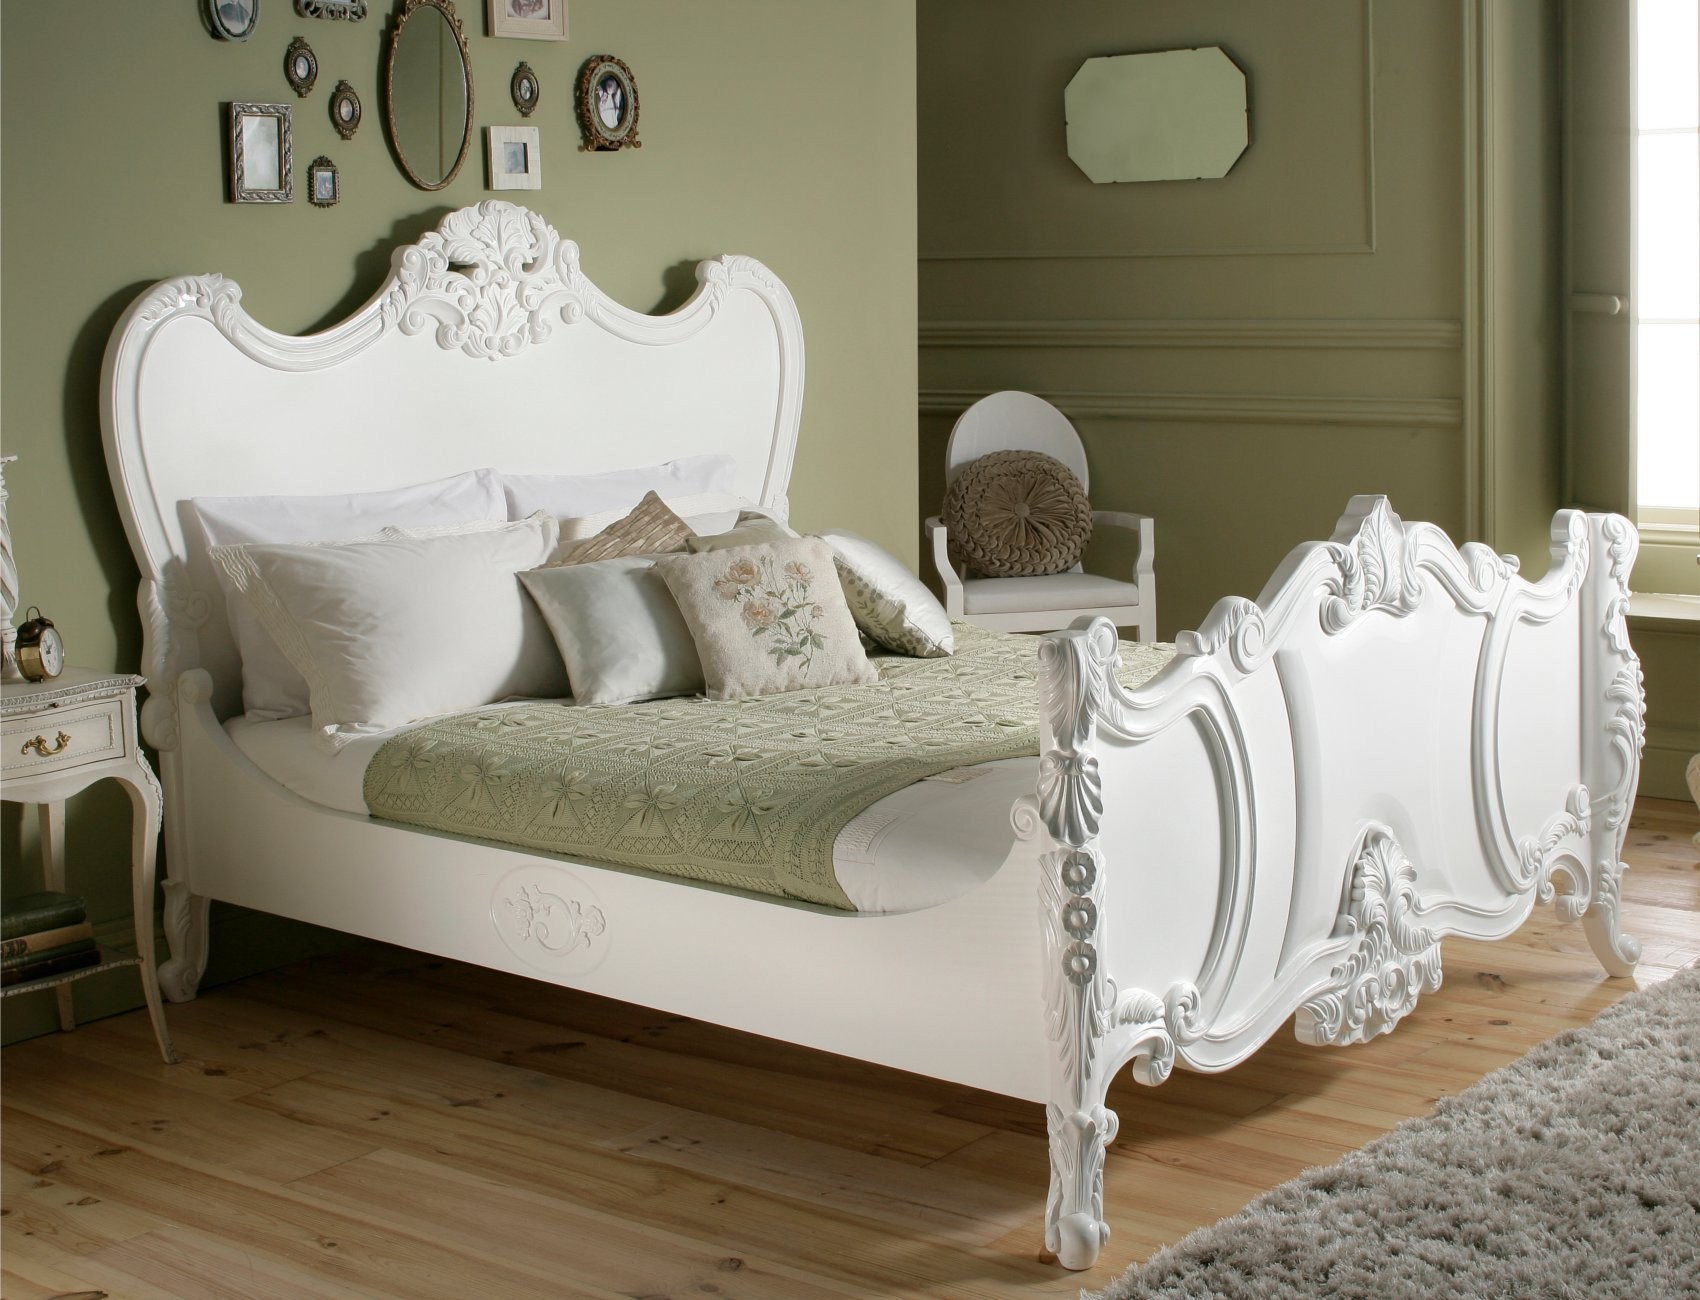 Loire French Style White Wooden Bed by Sleep Sanctuary | DESIGN ...